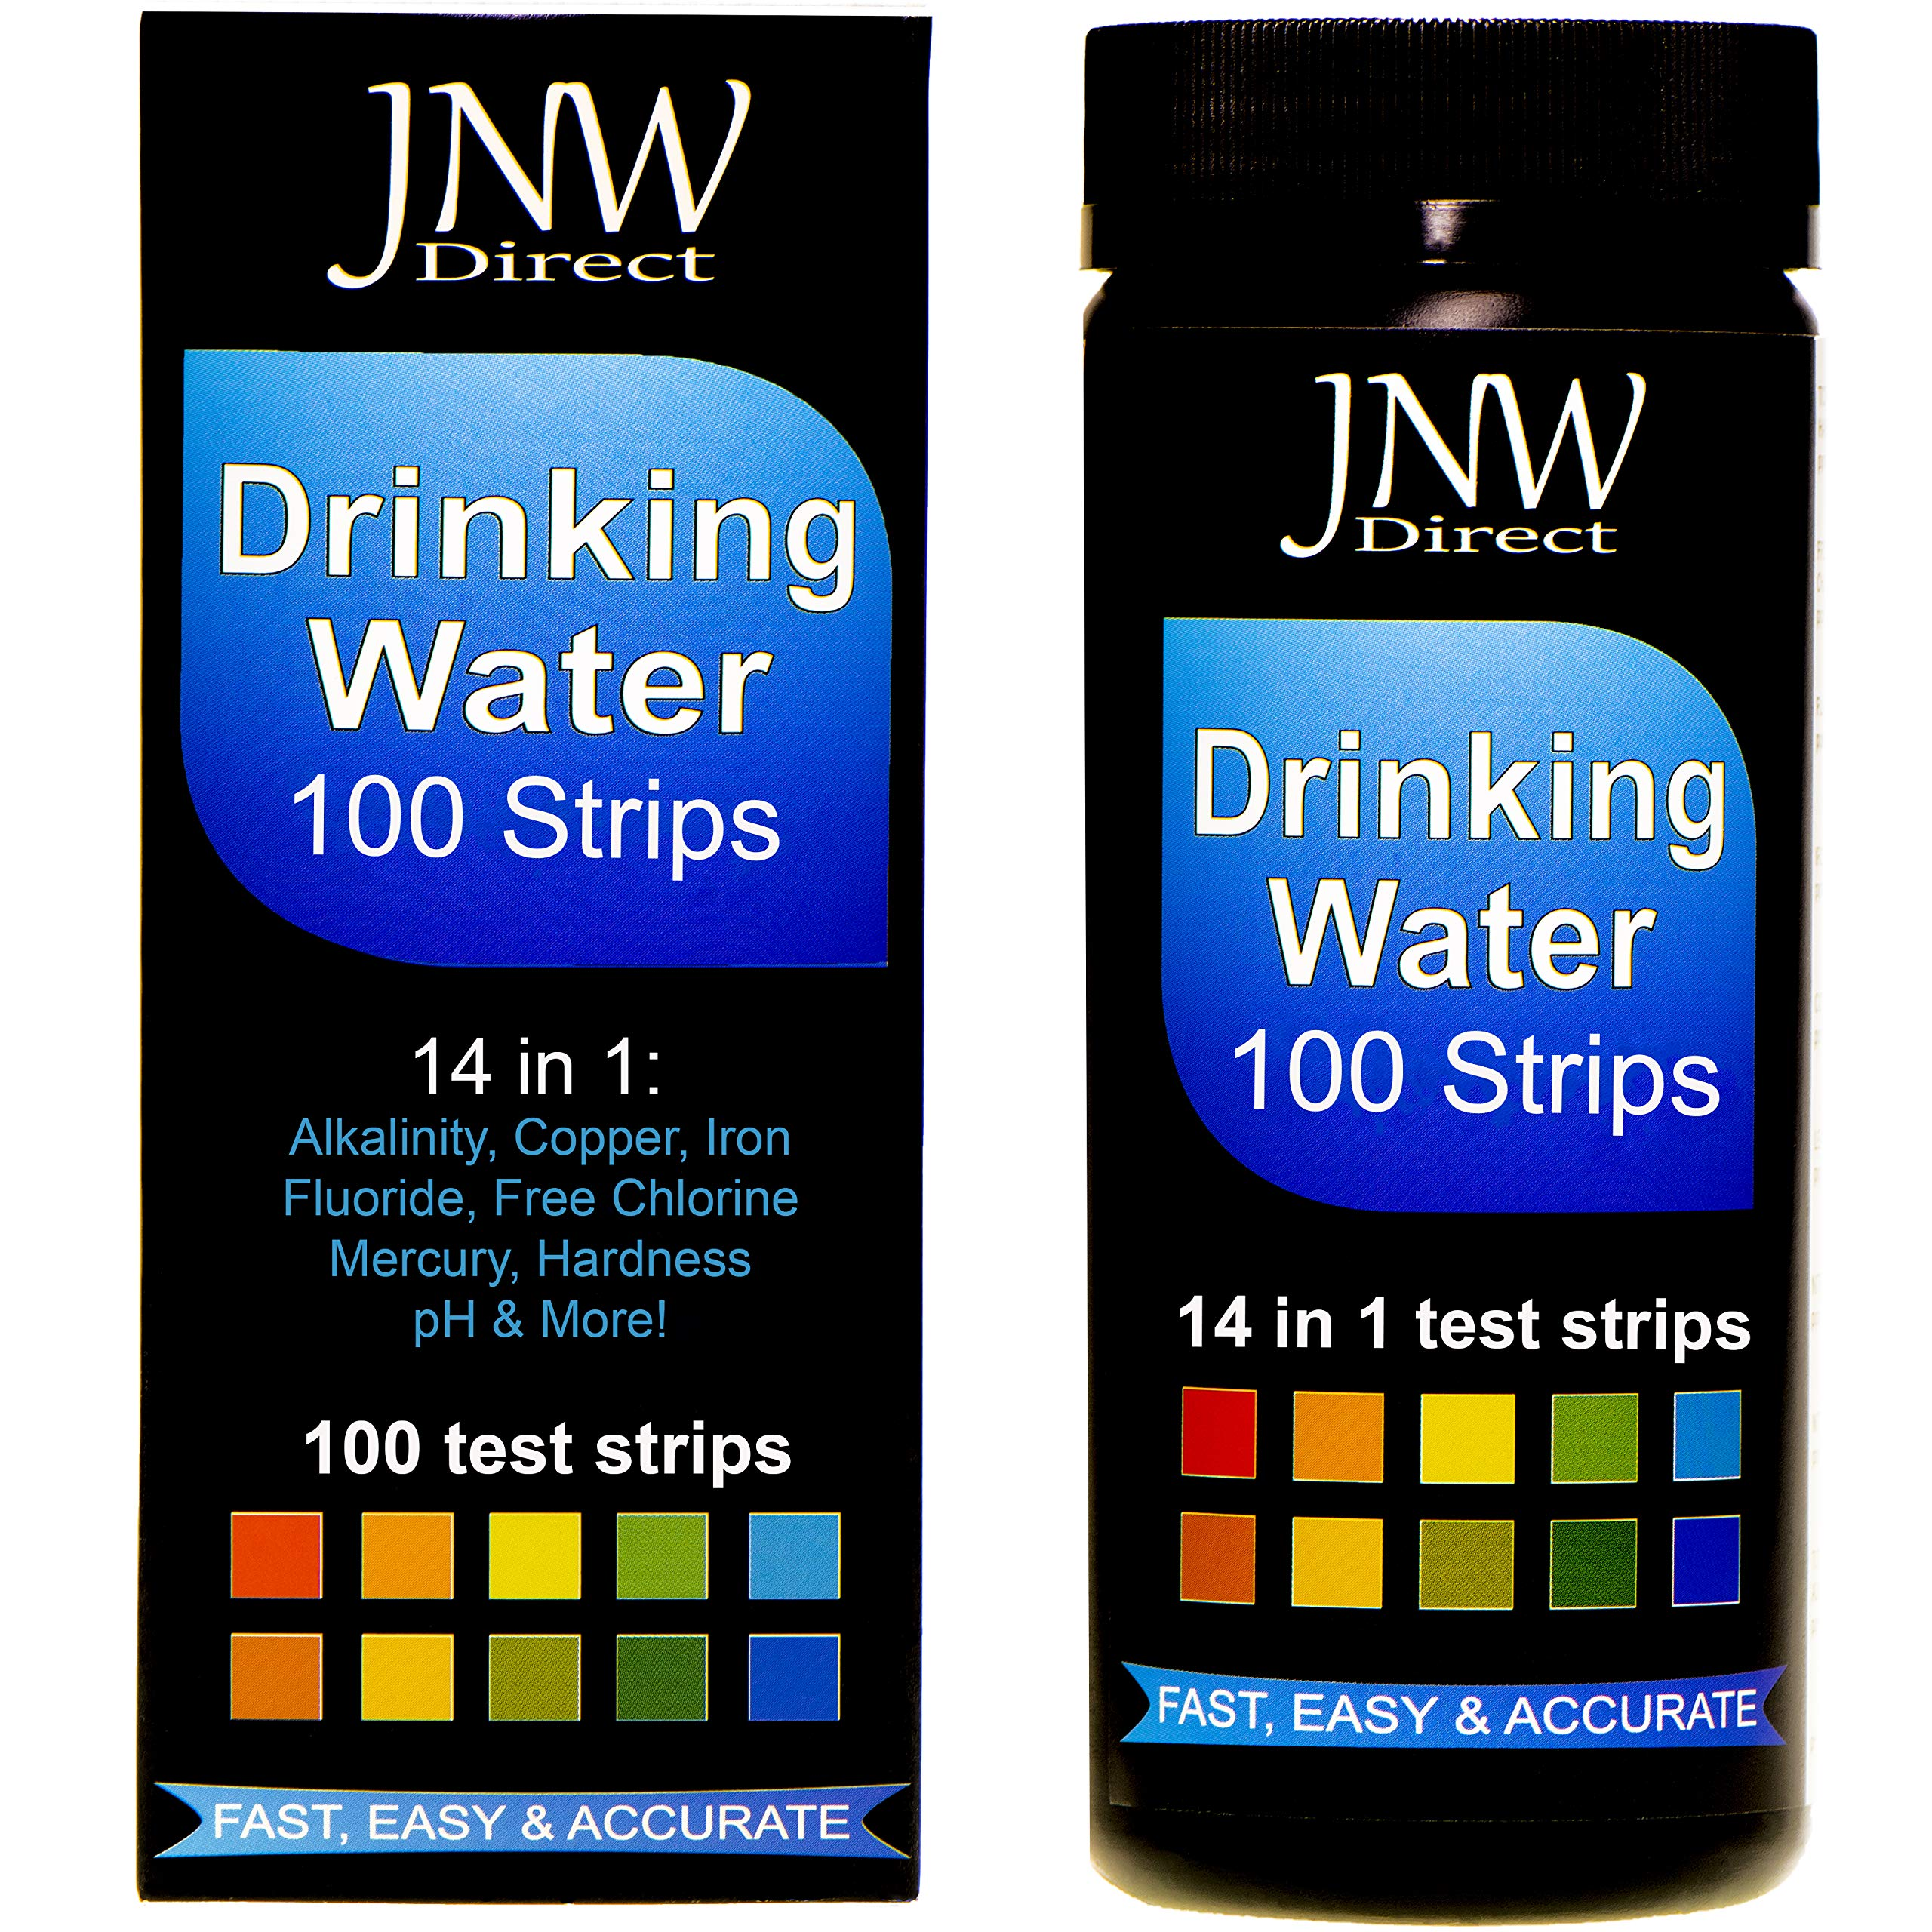 JNW Direct Drinking Water Test Strips 14 in 1, Best Kit for Accurate Water Quality Testing at Home, Ultra Low Level Sensitivity, Easy to Read & Instant Results (Packaging May Vary) by JNW Direct